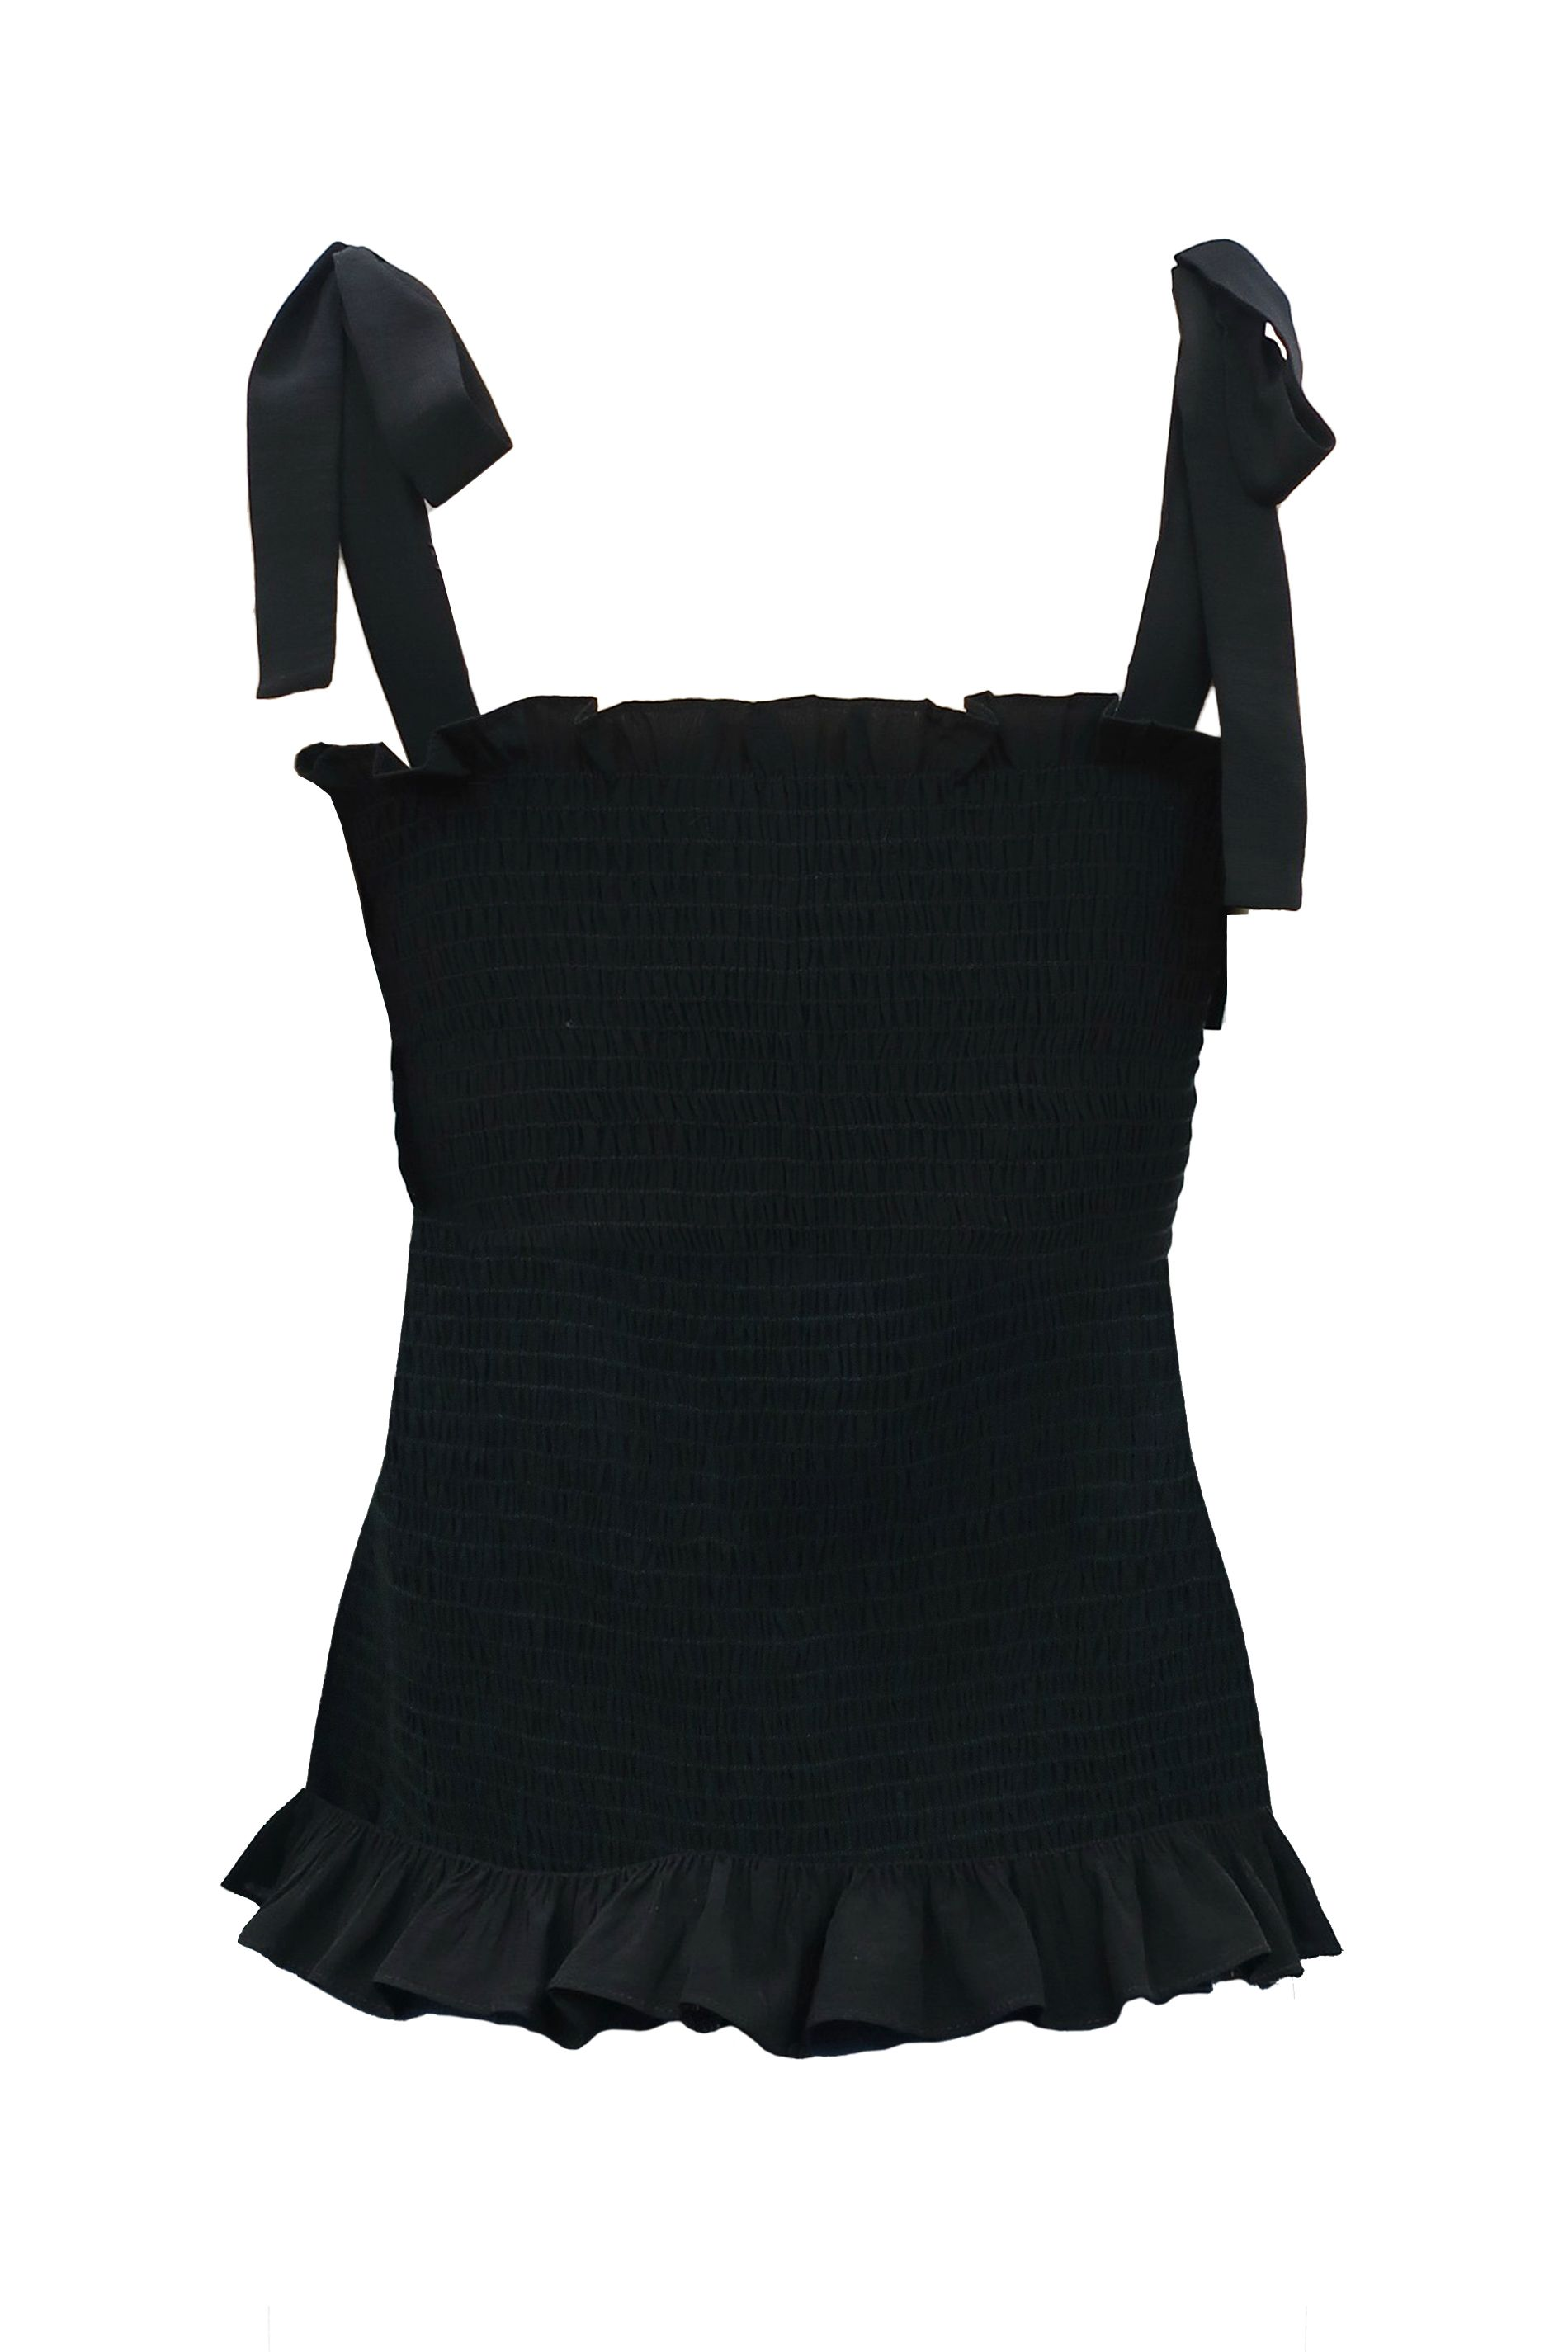 Holy Moly Stretch Sleeveless Top in Black